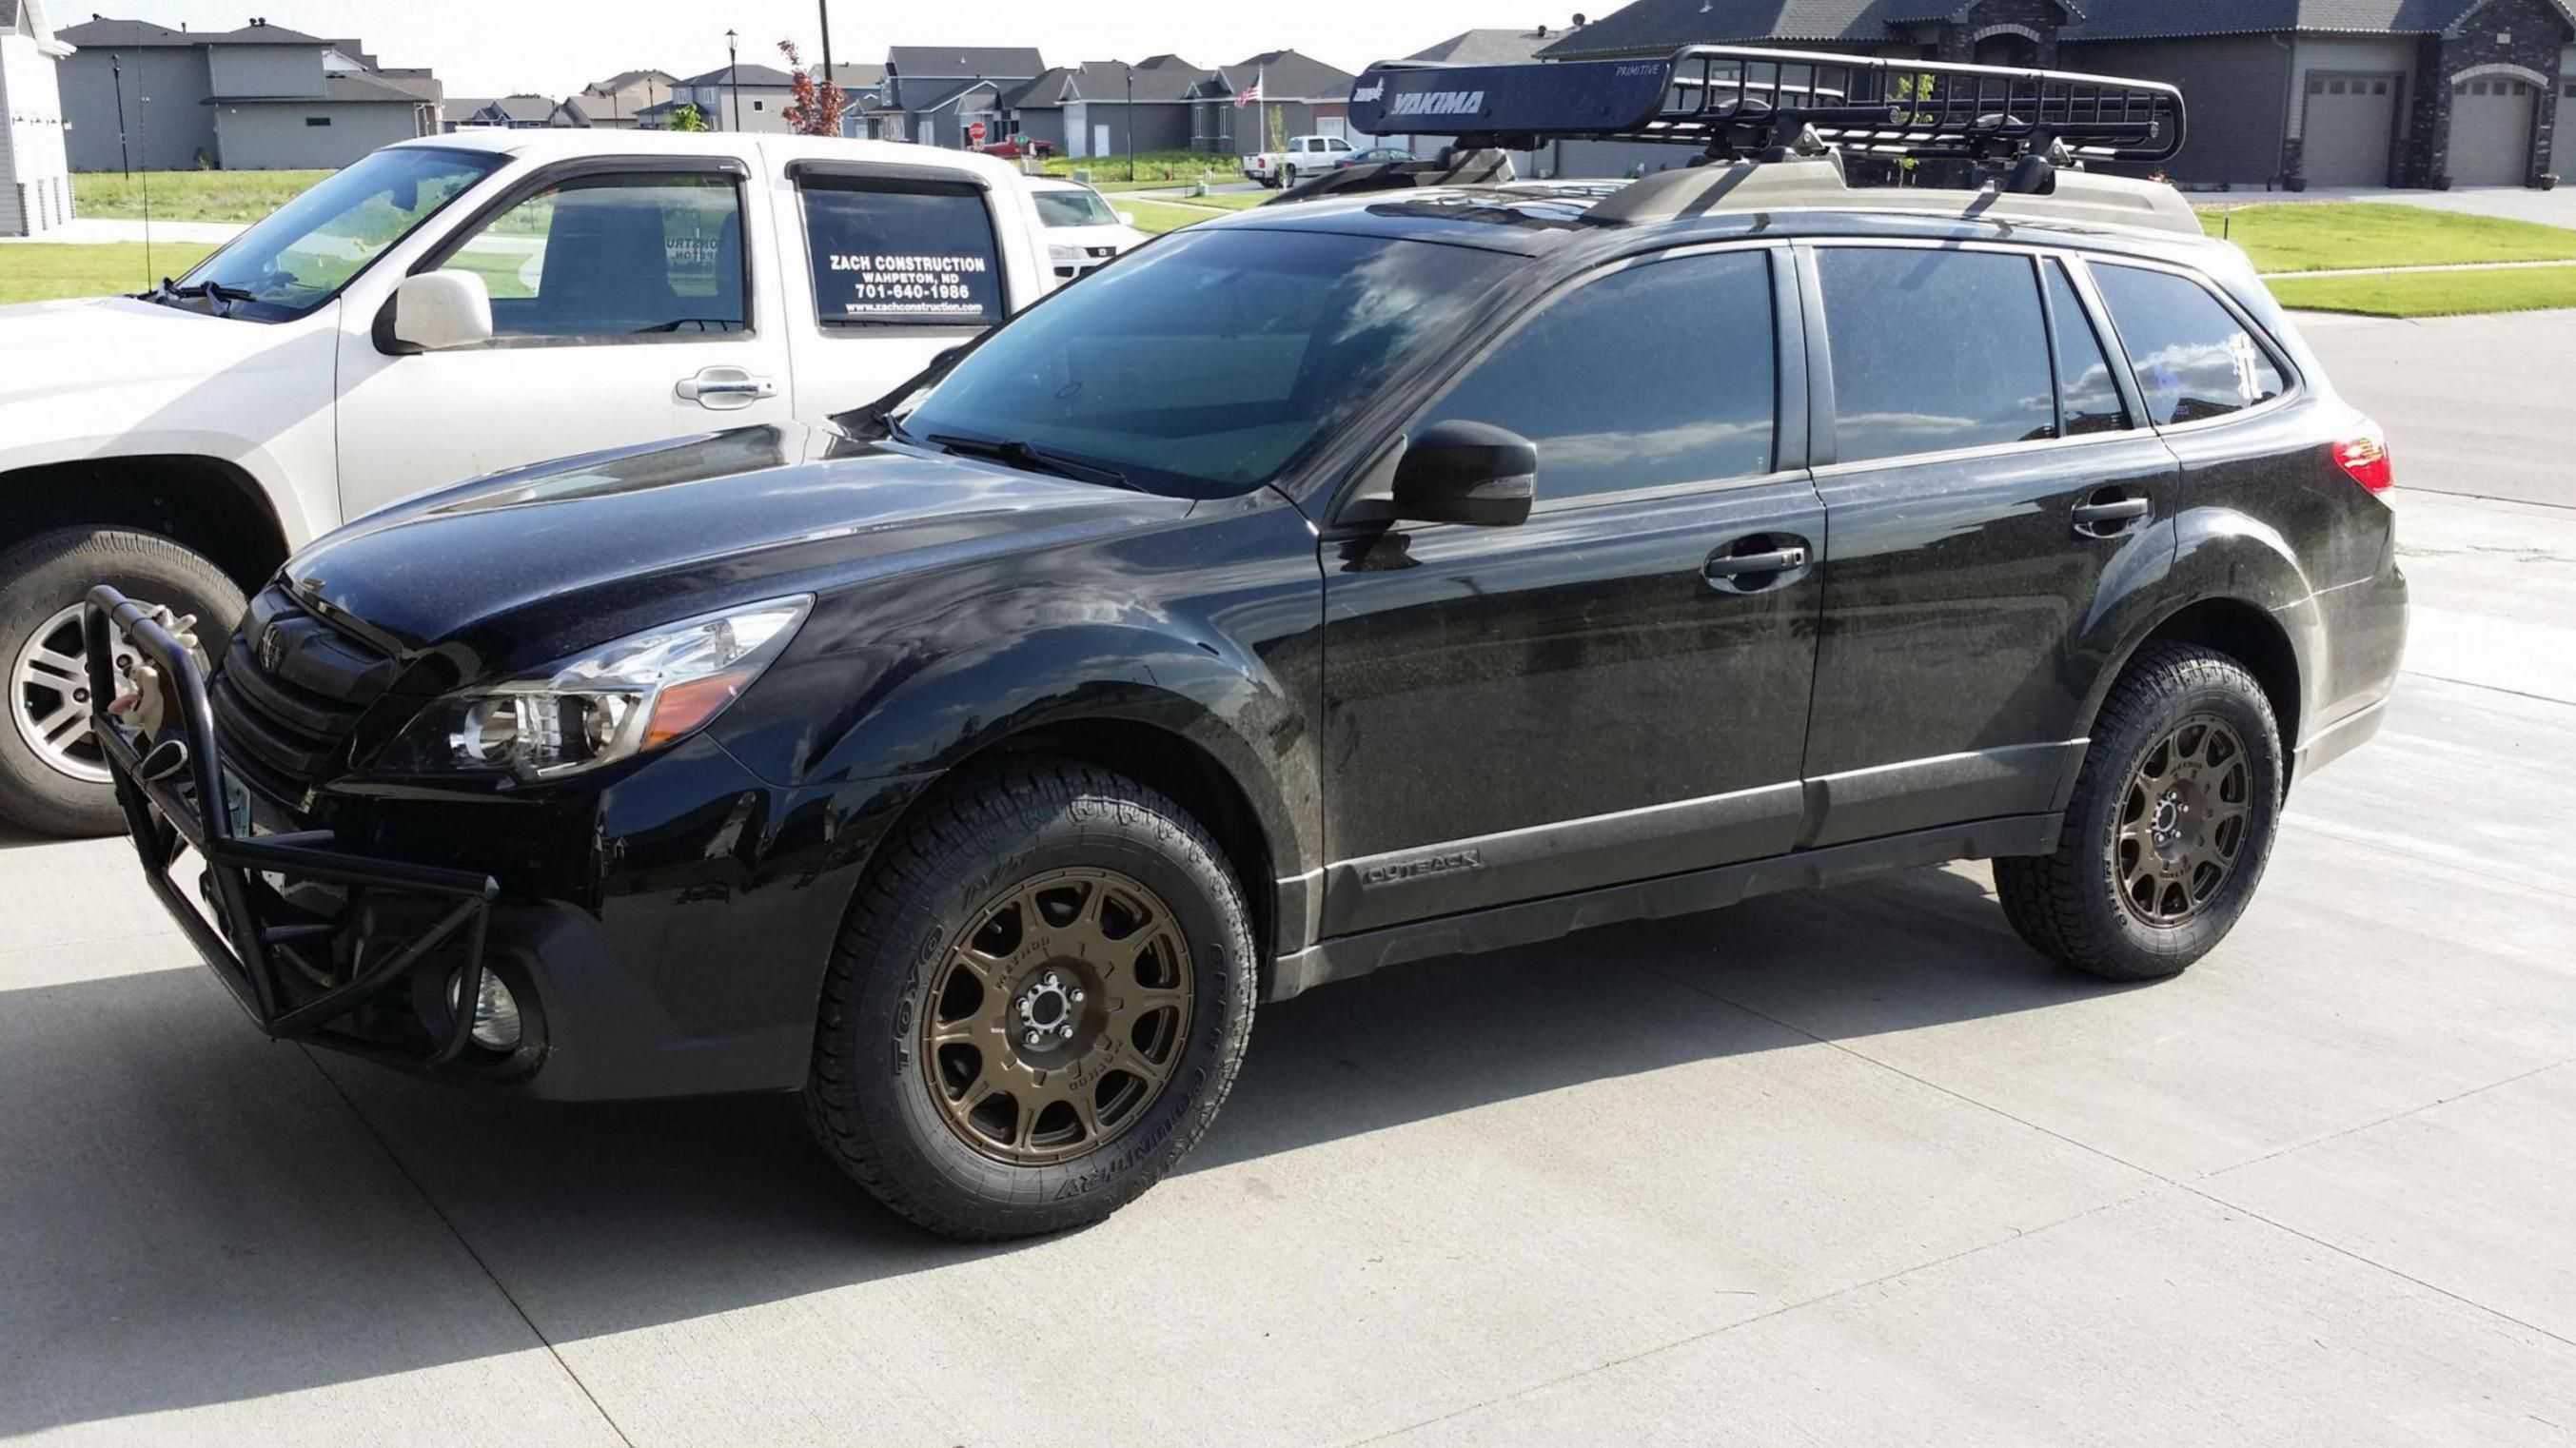 Image Result For Lifted Gen 4 Outback Subaru Outback 2011